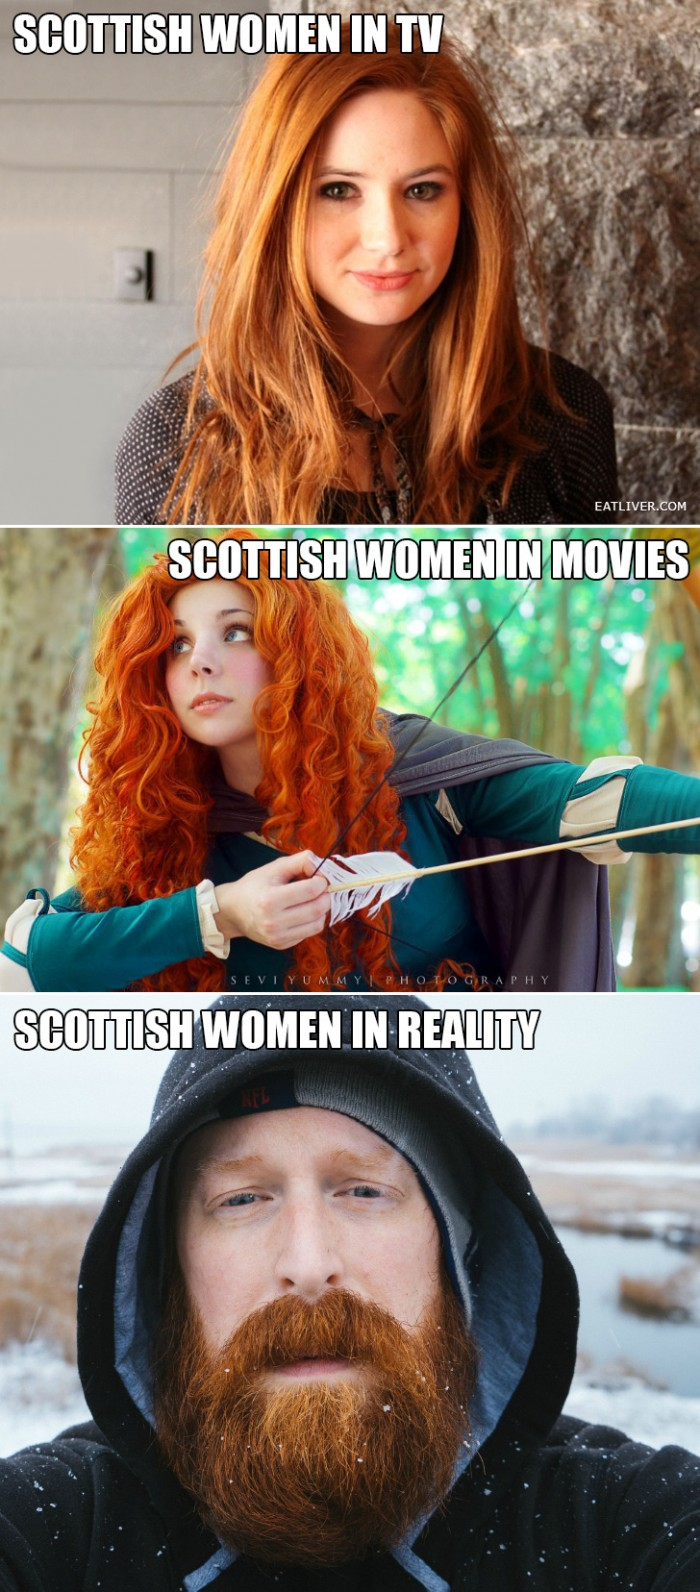 scottish women.jpg